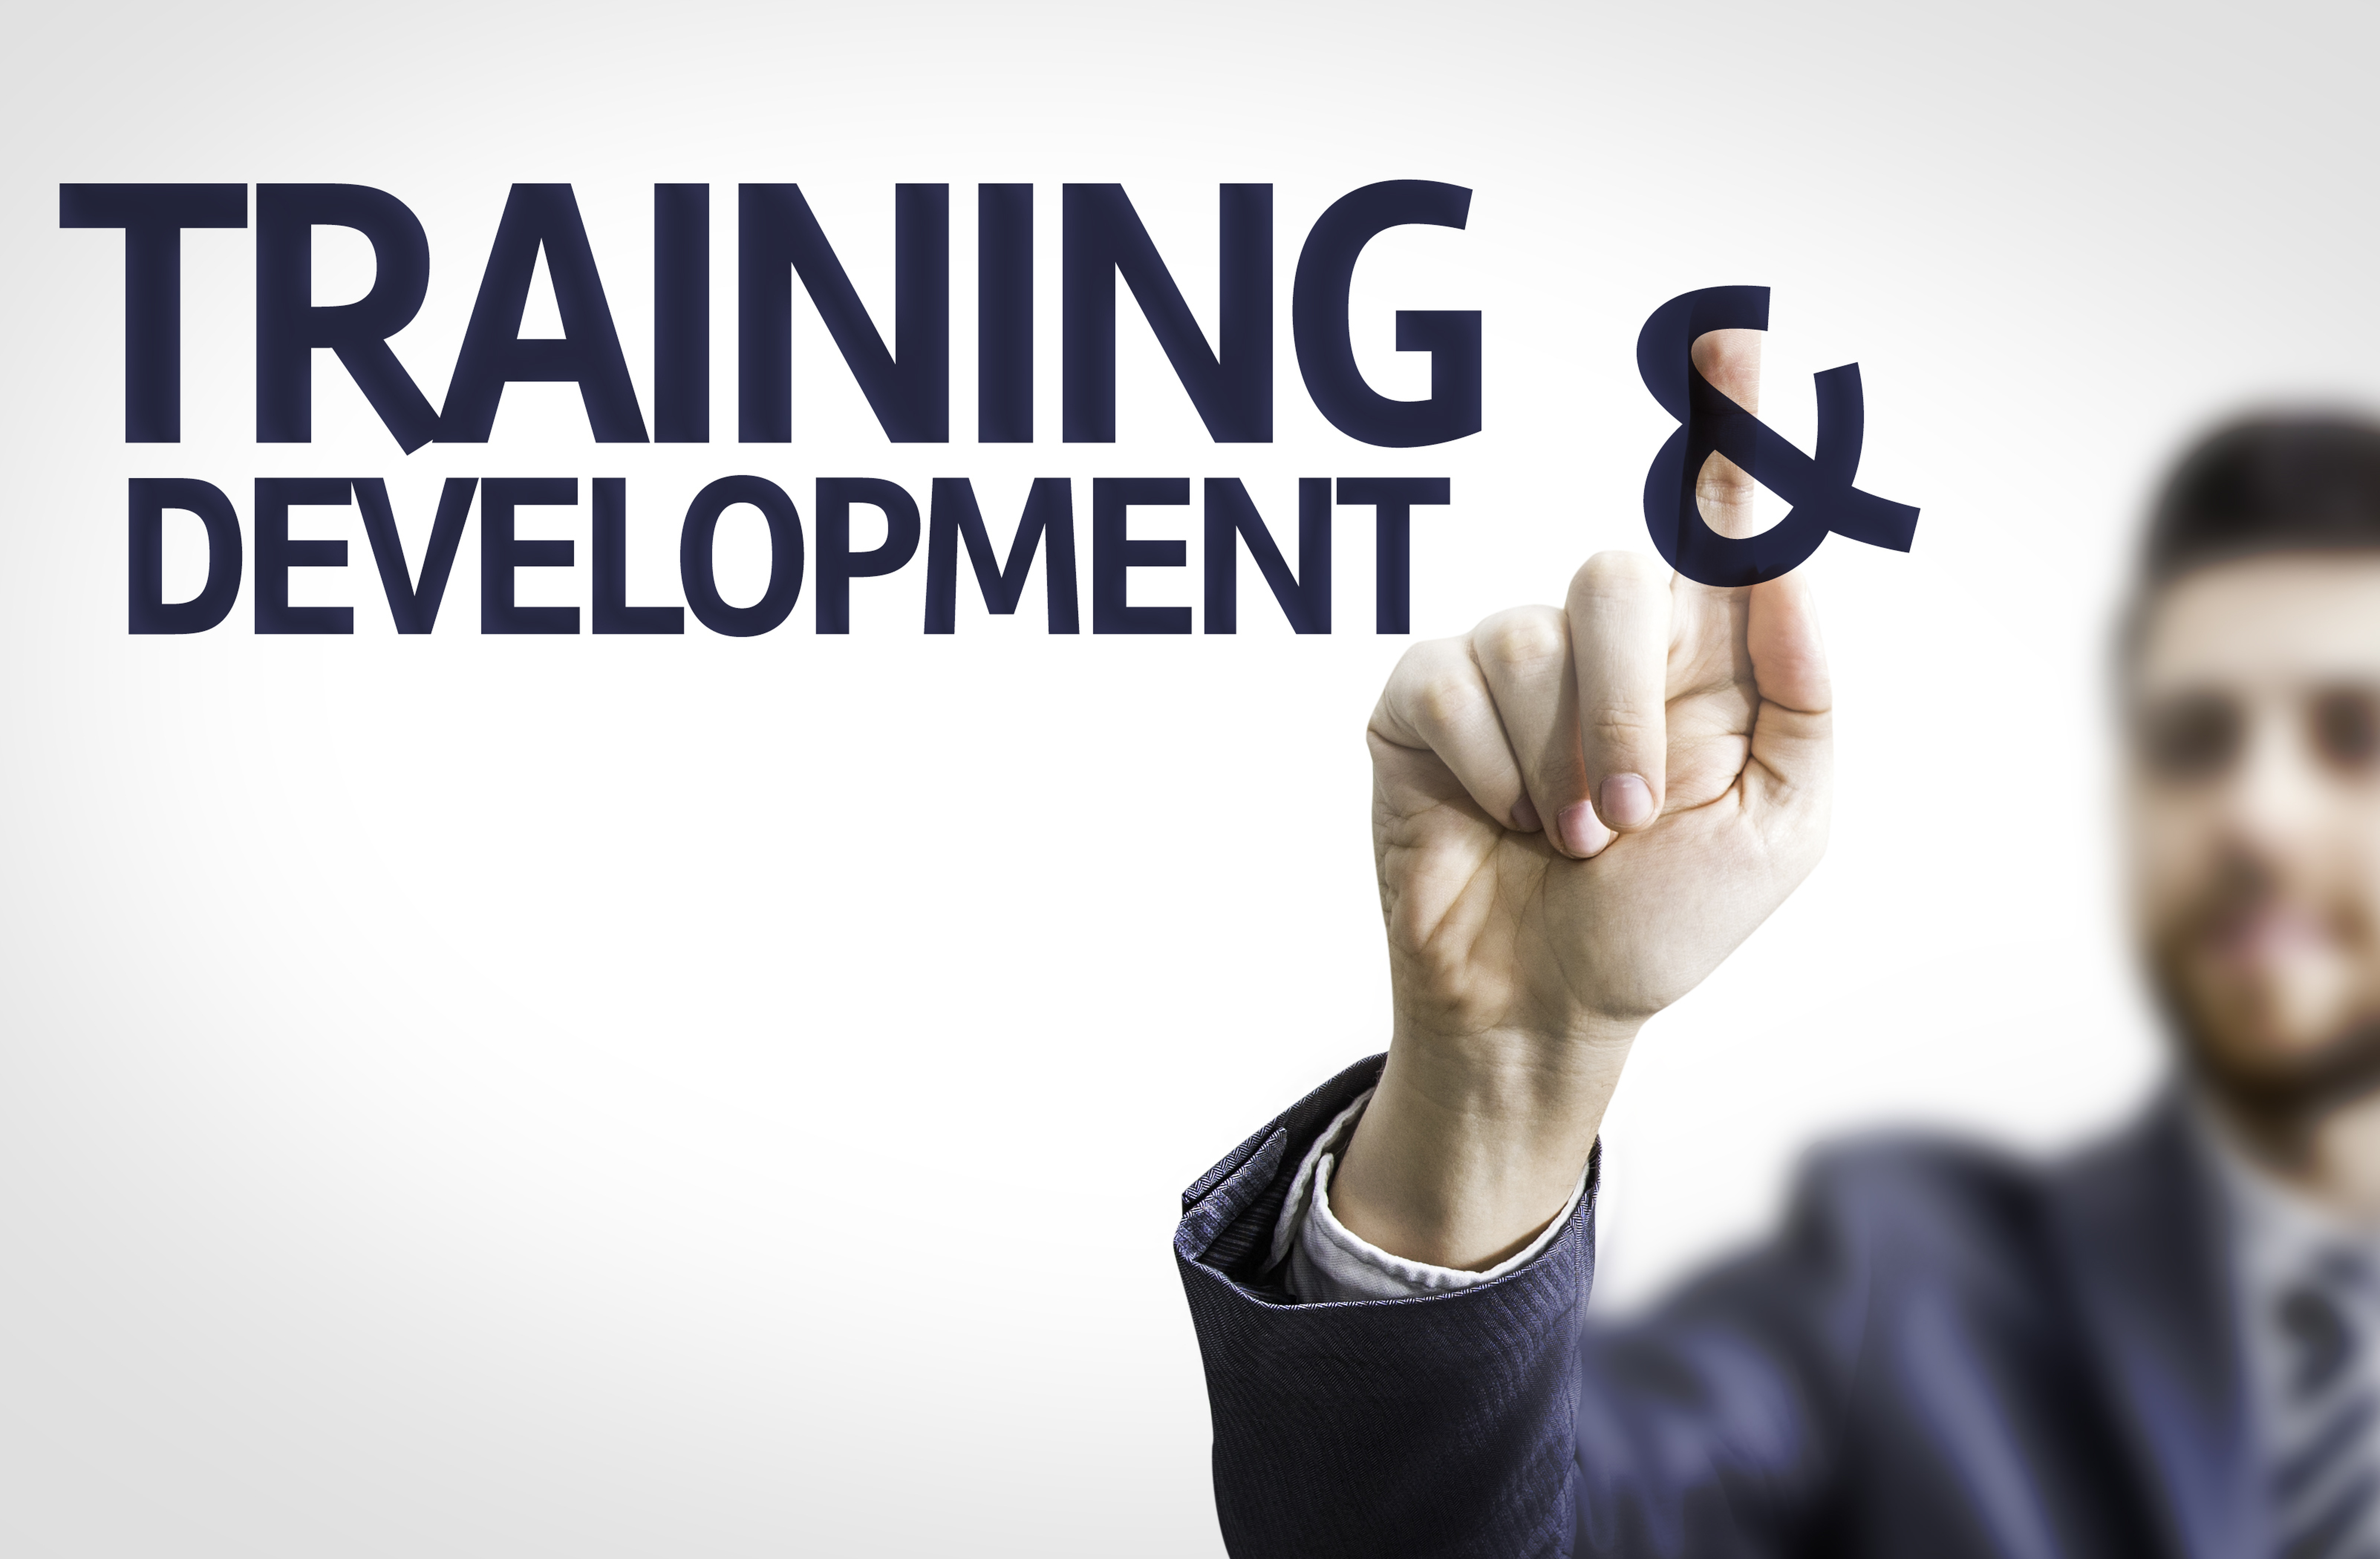 training and development at parle Role of training importance of training and development • optimum utilization of human resources - training and development helps in optimizing the utilization of human resource that further helps the employee to achieve the organizational goals as well as their individual goals.